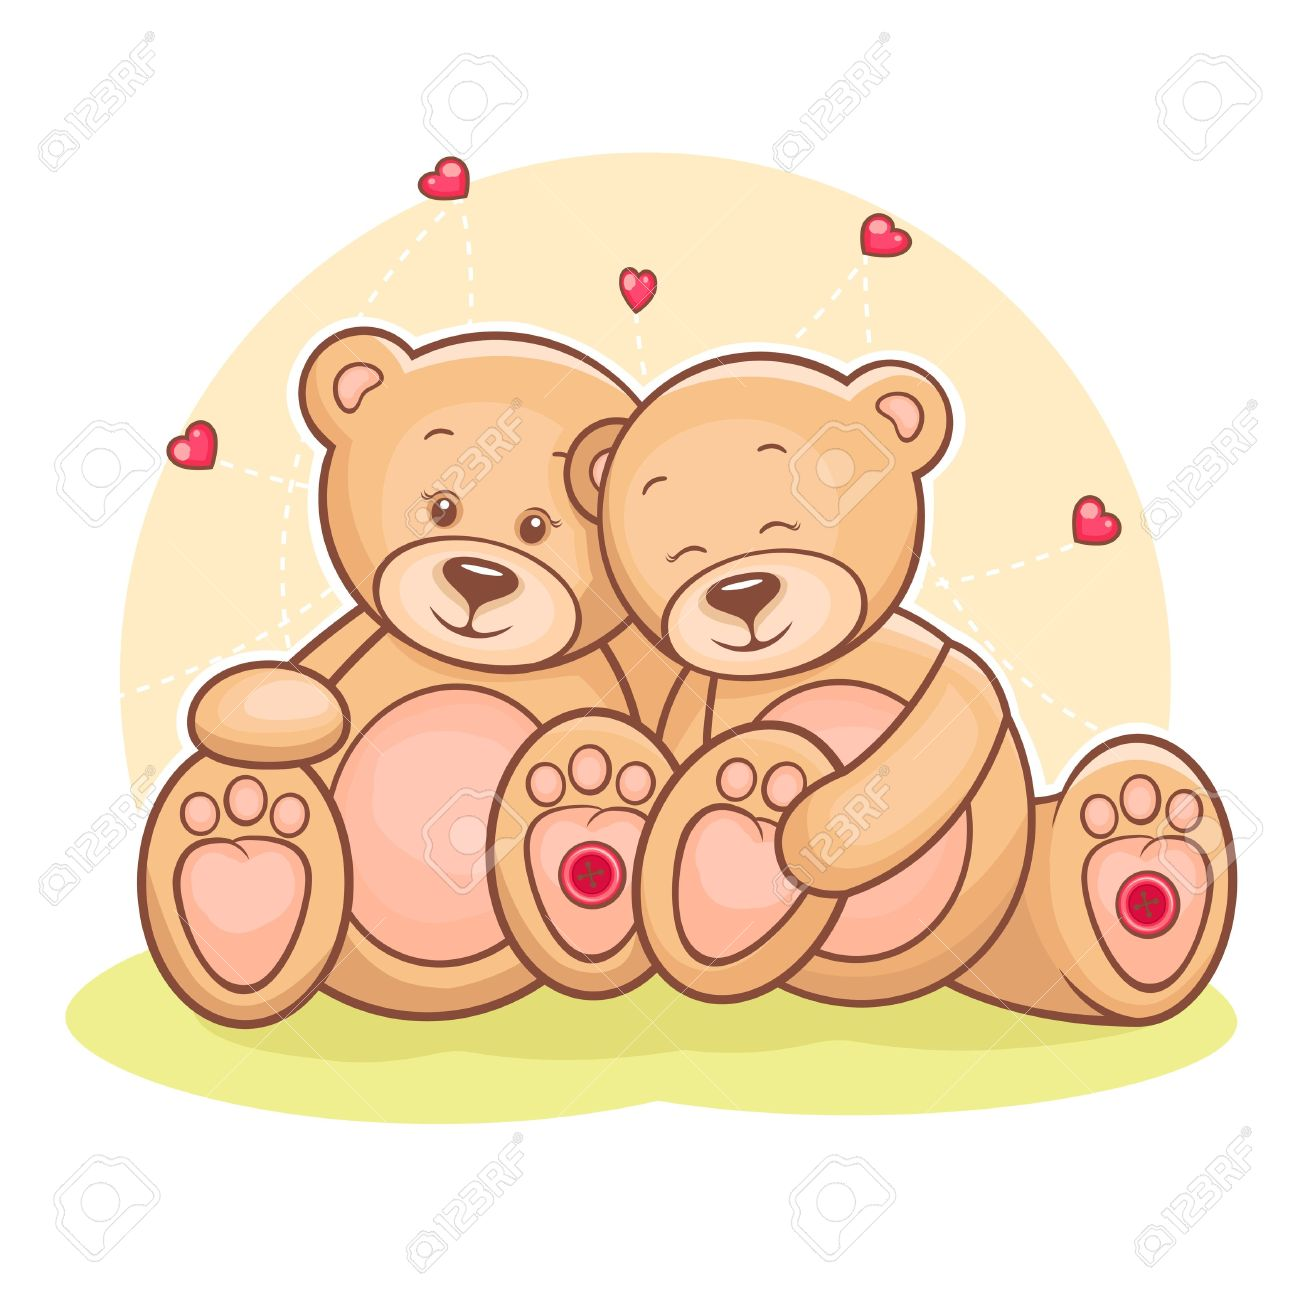 Illustration of loving couple Teddy bears with hearts Stock Vector - 13262348